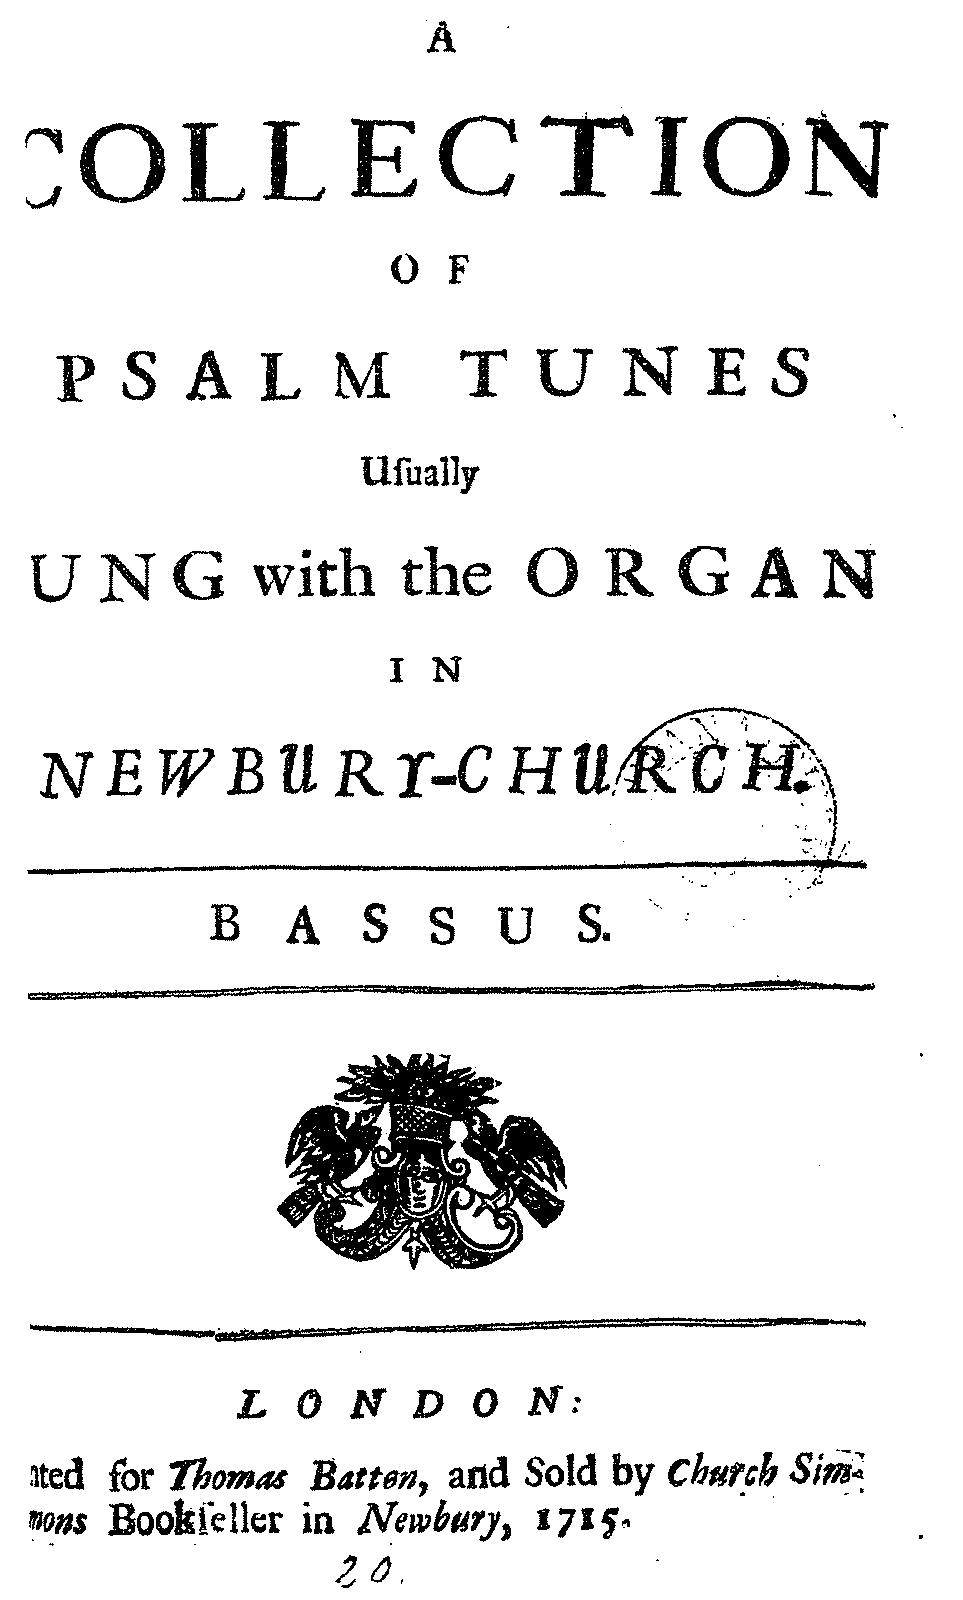 PMLP182800-collection of tunes for newbury church 1715.pdf